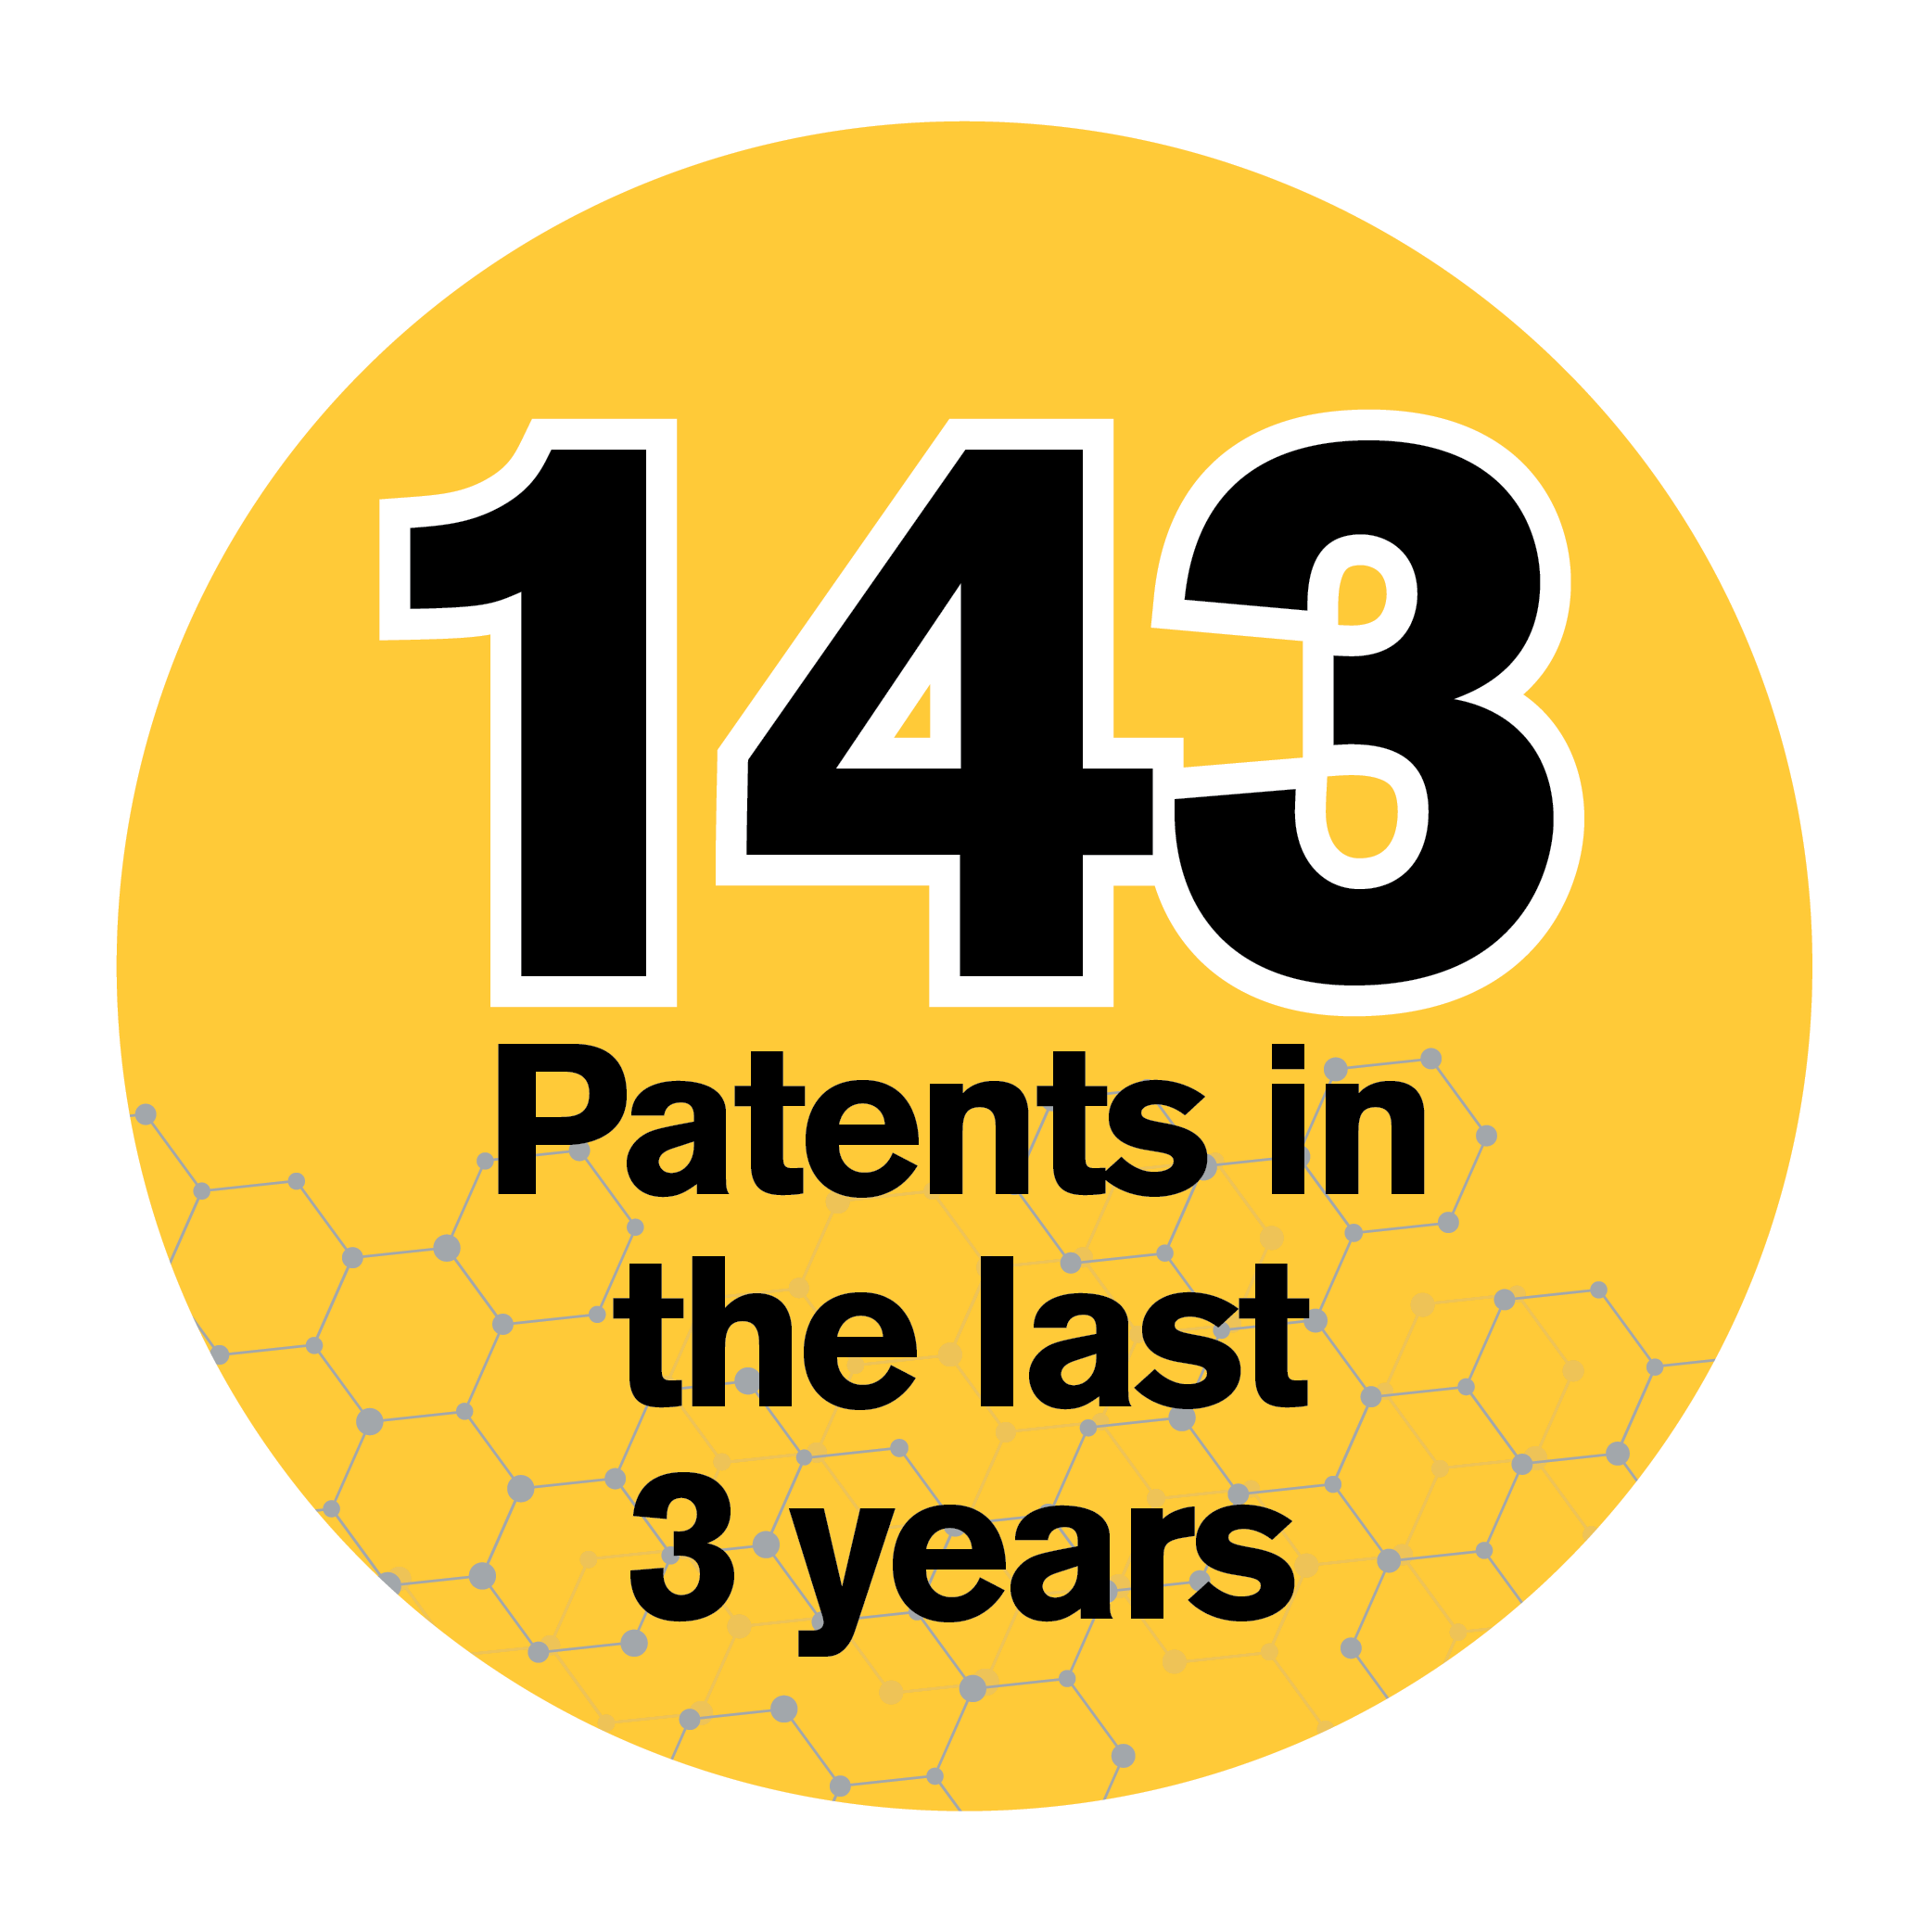 143 Patents in the last 3 years